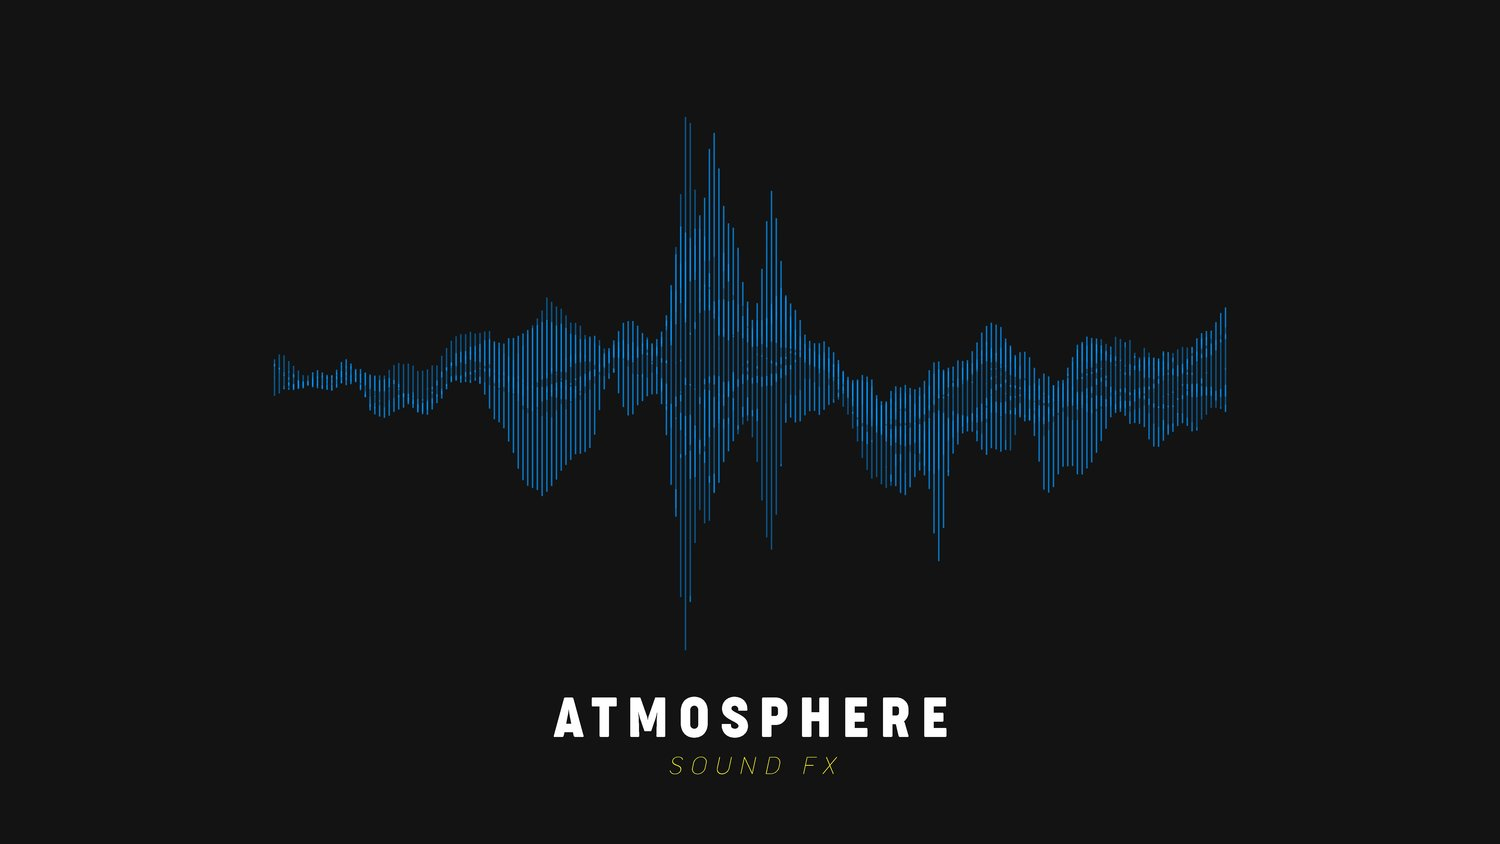 Atmosphere Sound FX JPG.jpg